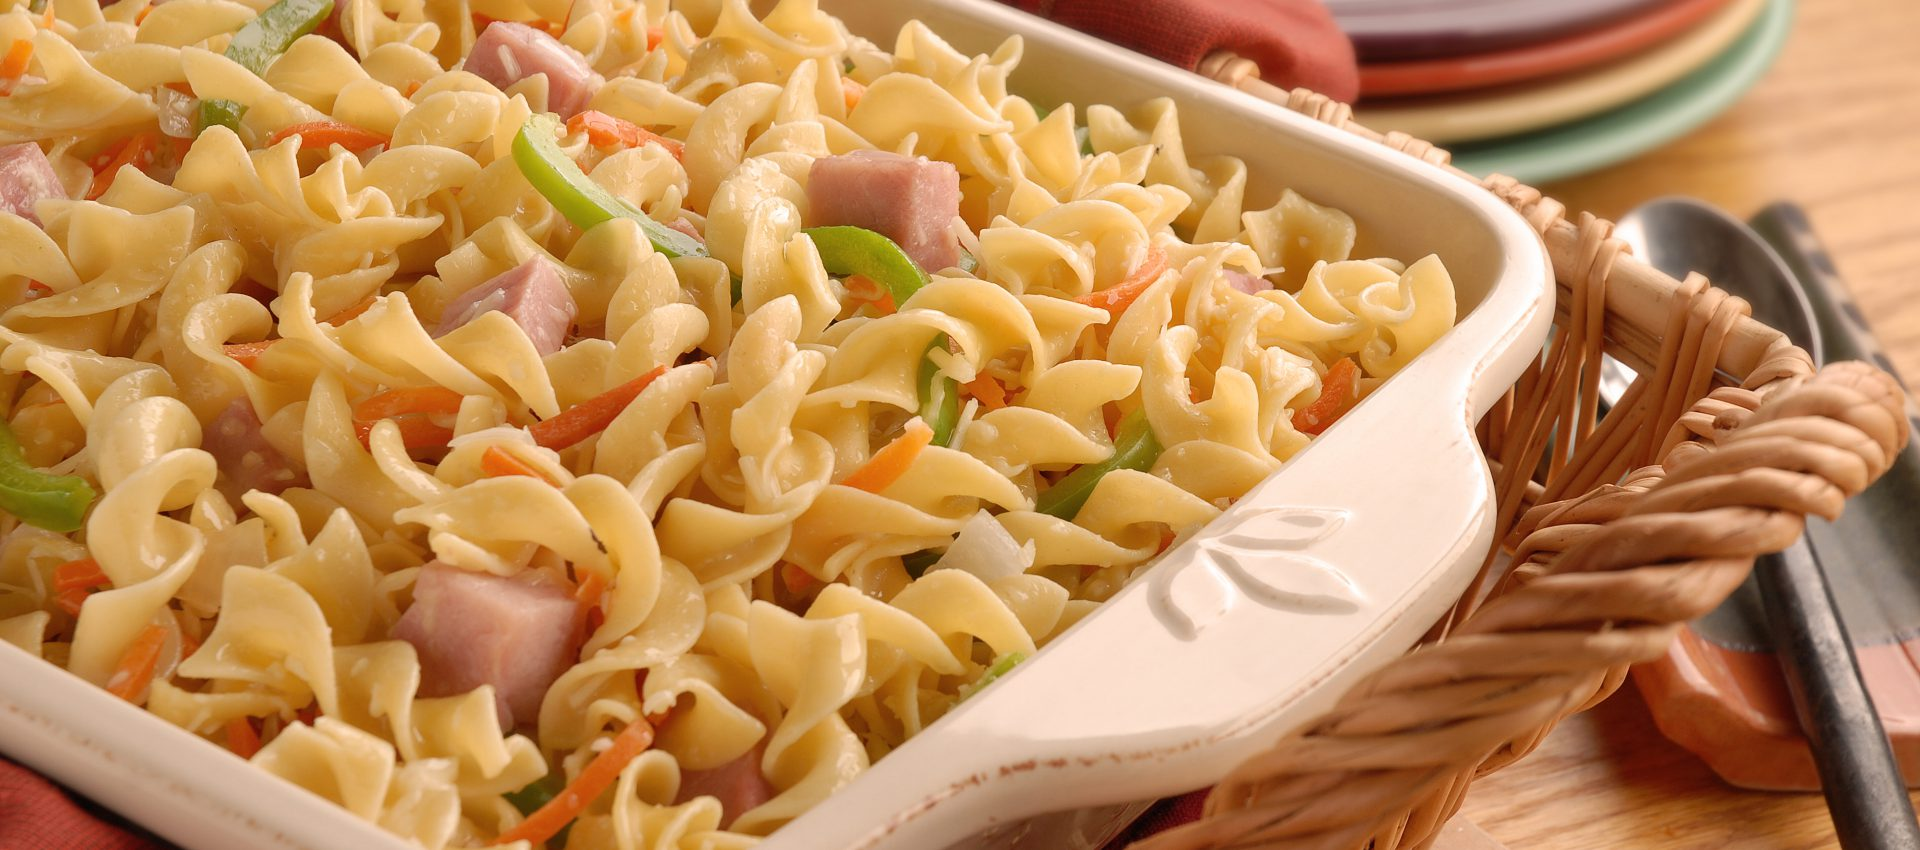 Mueller's Pasta Country Style Ham and Noodles